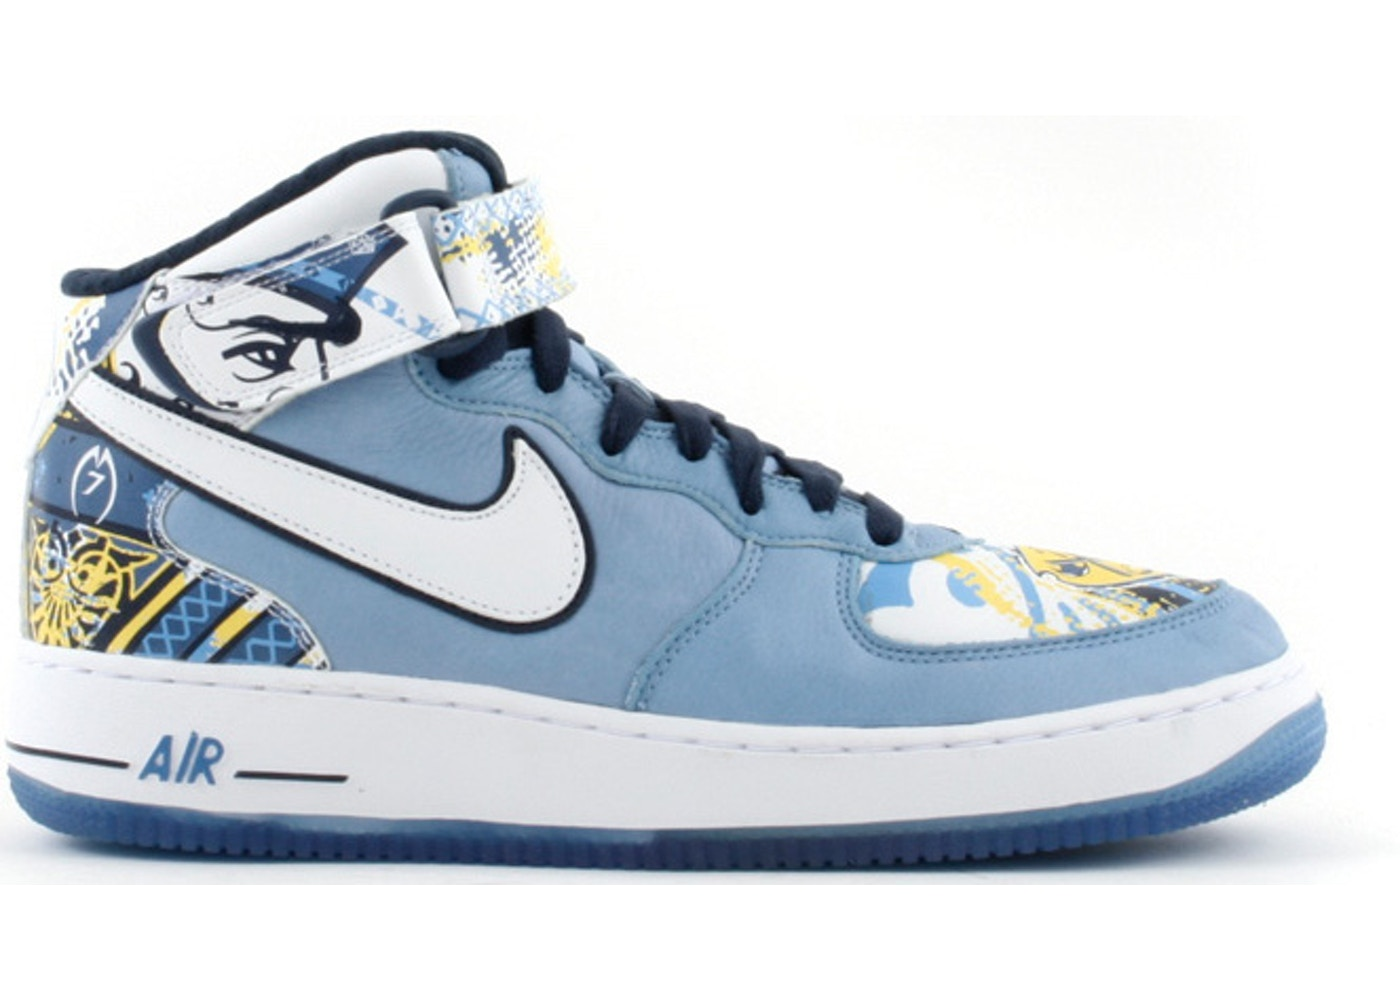 timeless design 0aae2 207fe Air Force 1 Mid Michael Vick - 313984-411